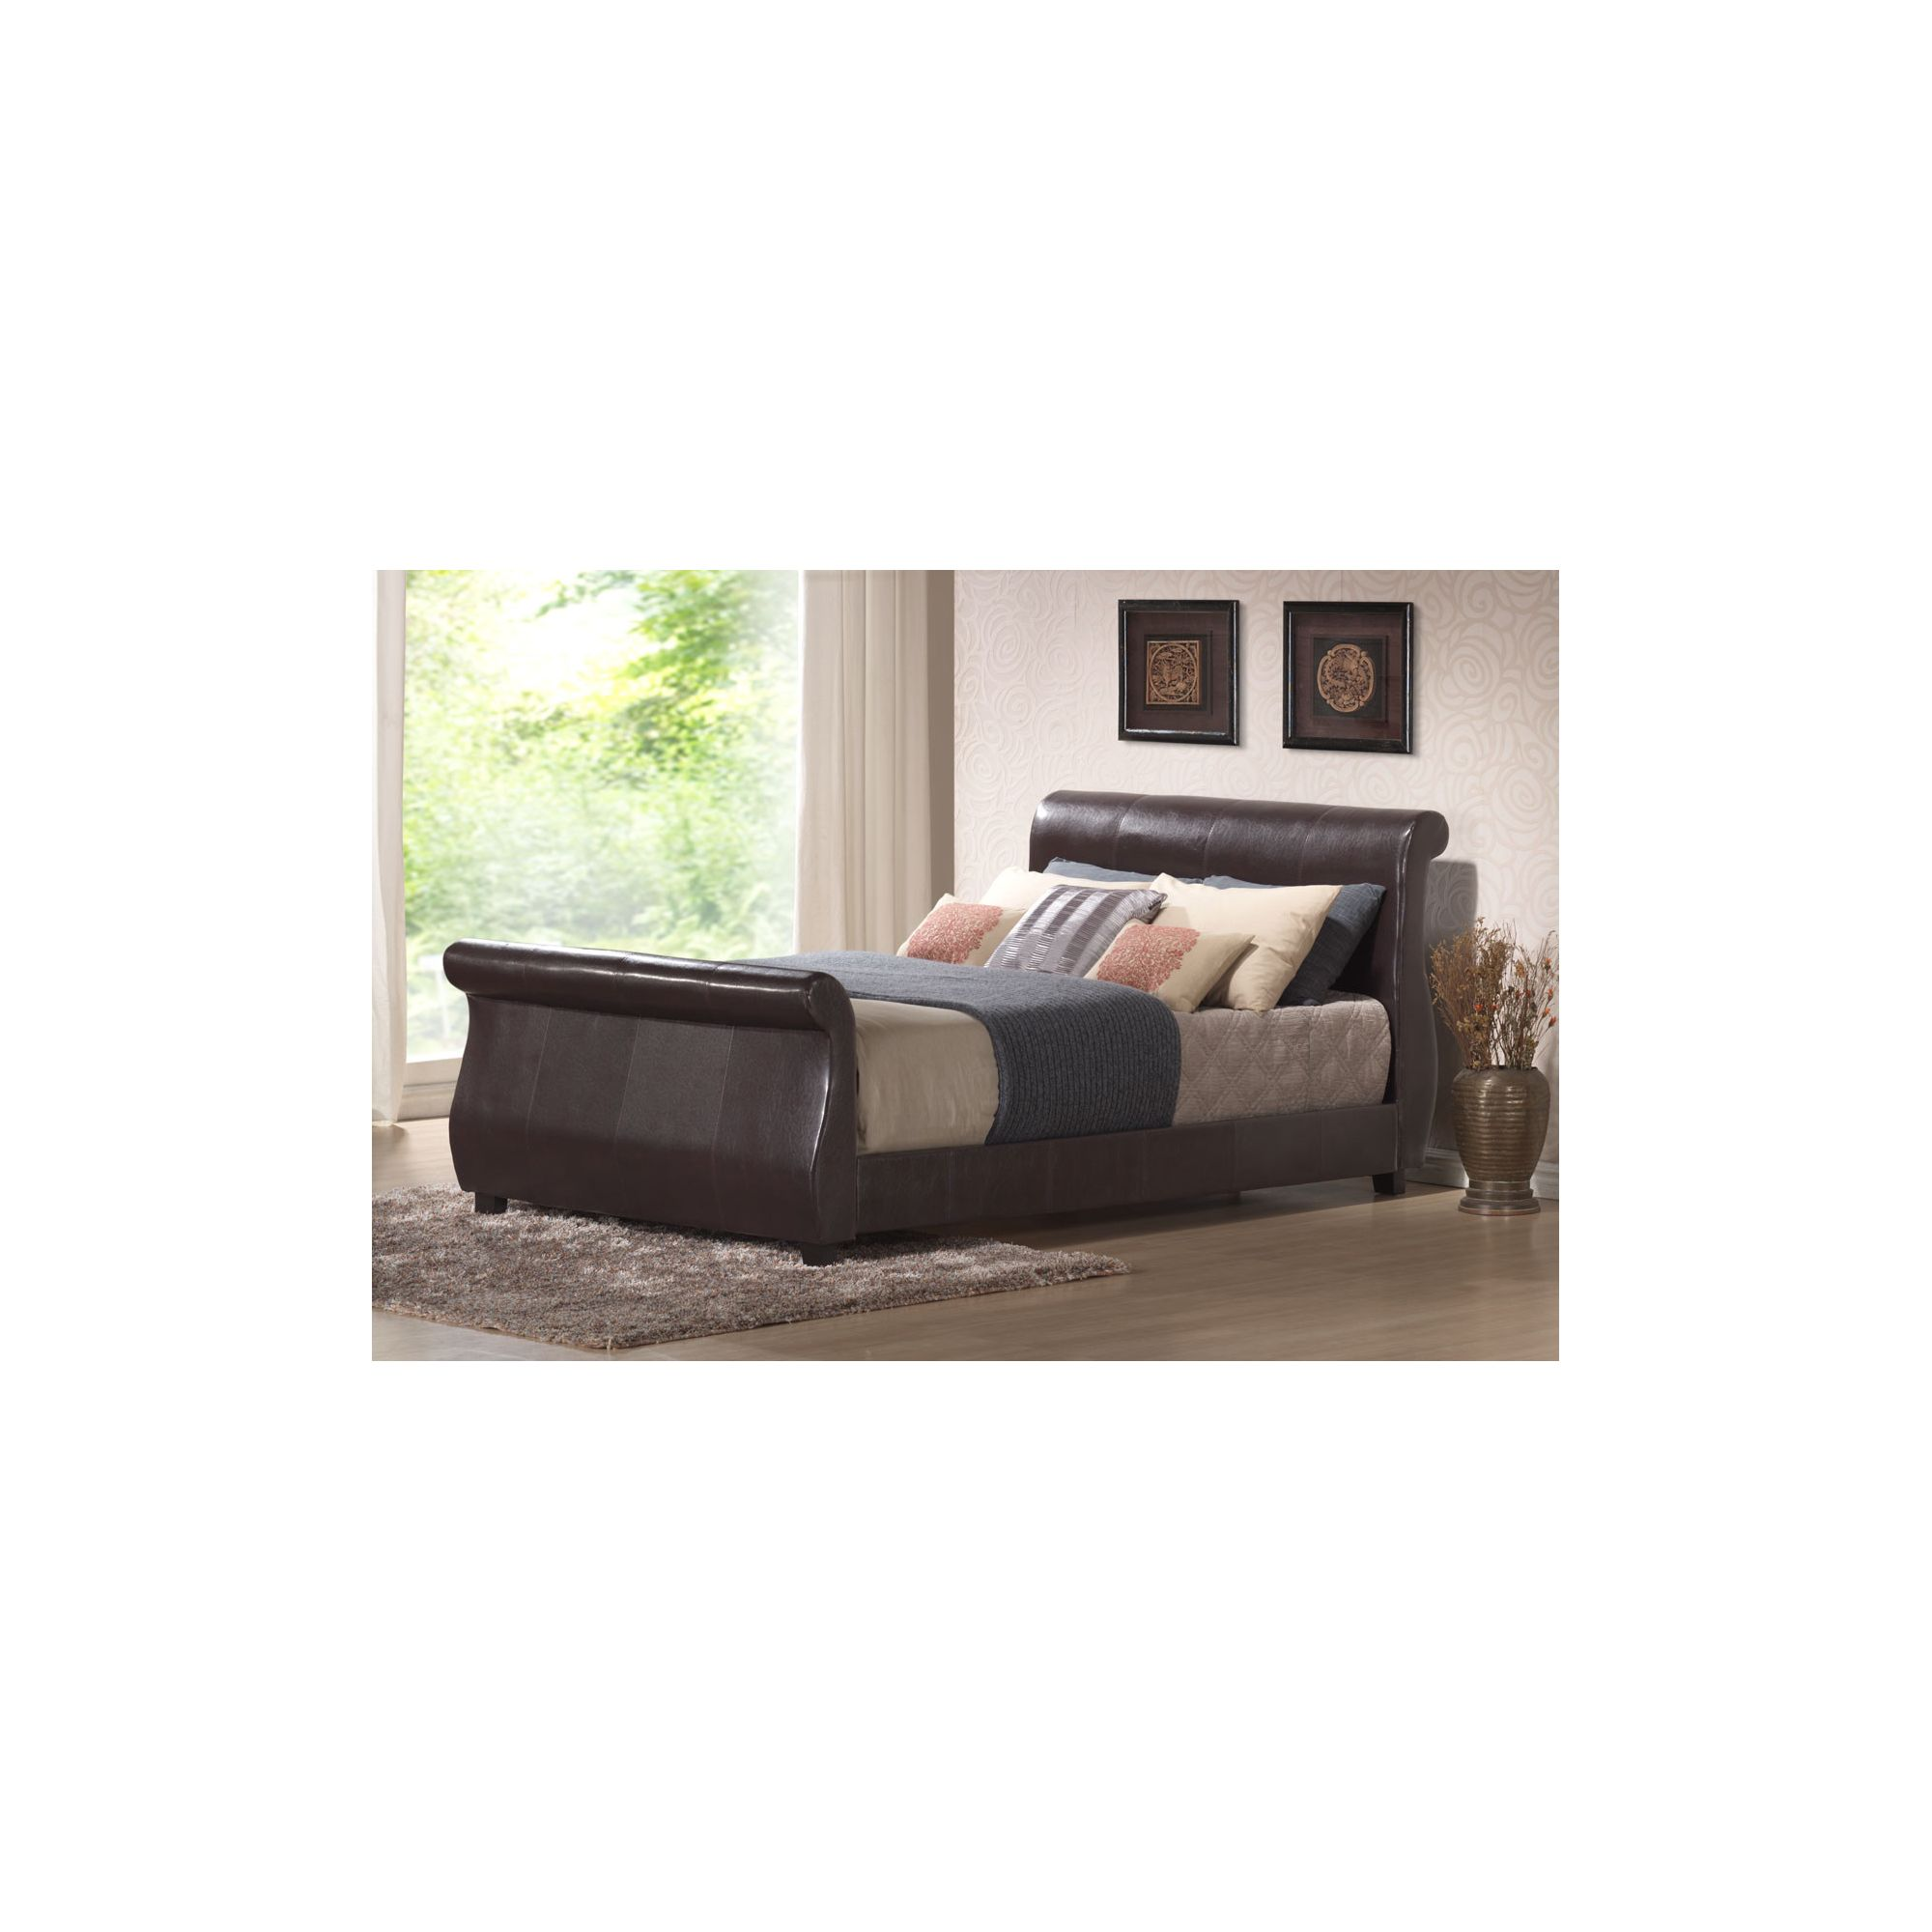 Interiors 2 suit Winchester Bedframe - Black - King at Tesco Direct